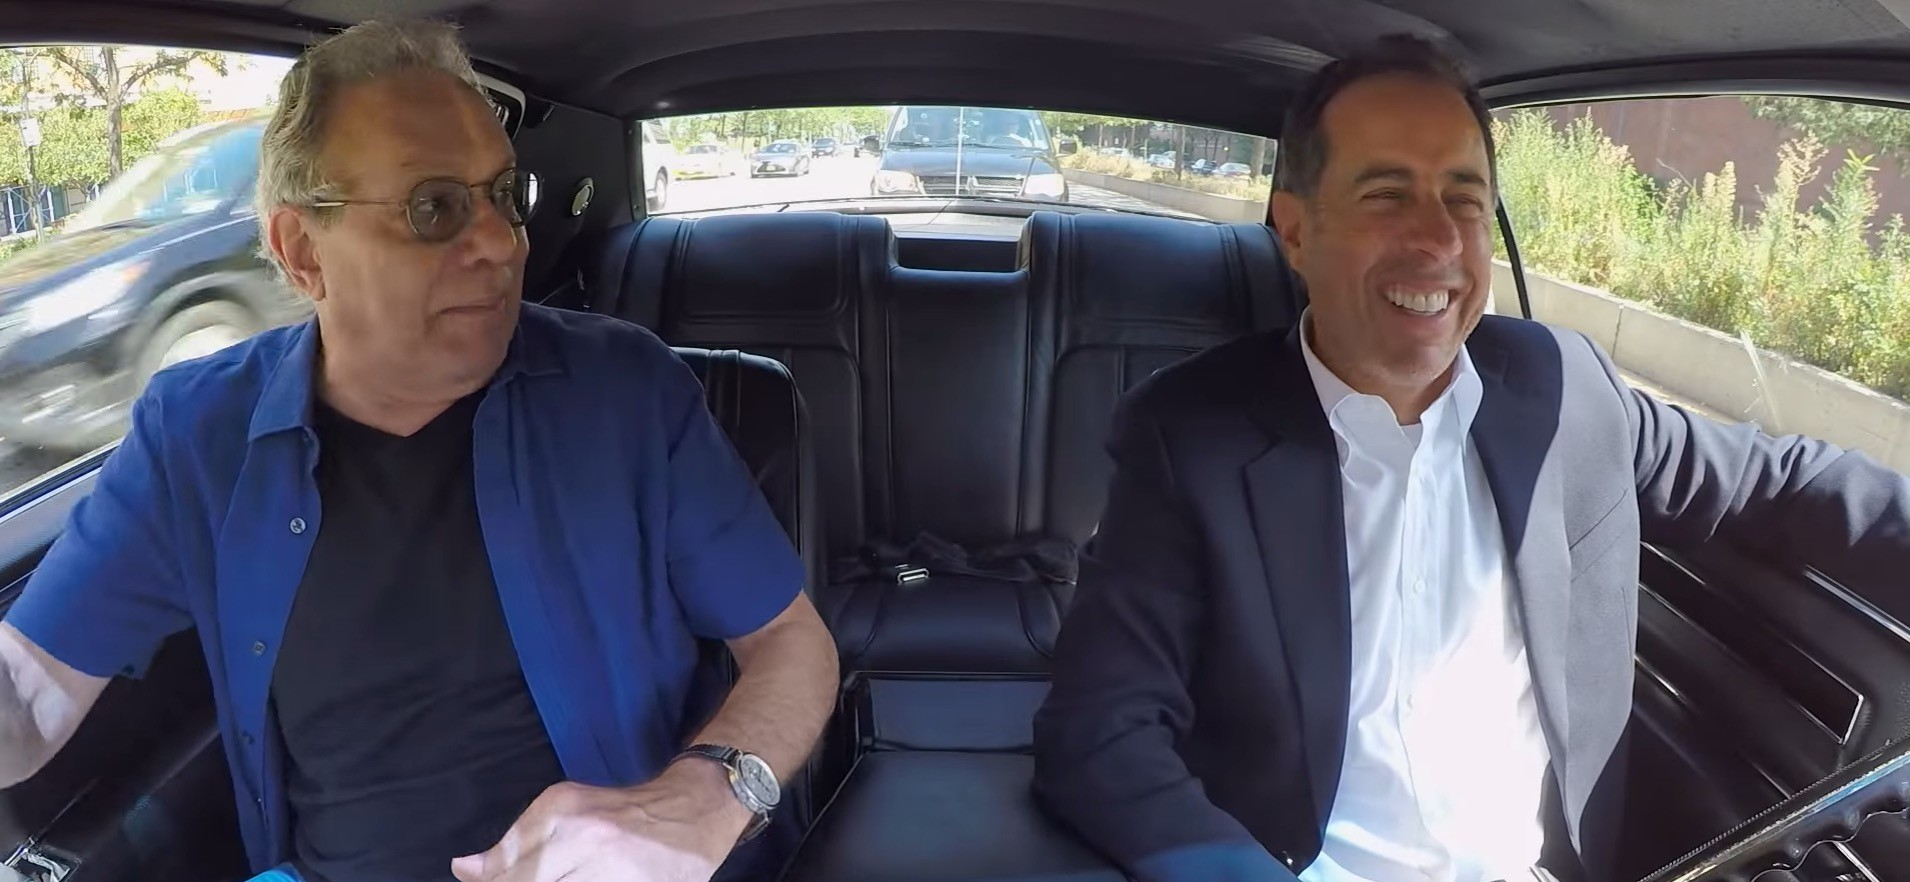 seinfeld spotted driving his new porsche 918 spyder autoevolution. Black Bedroom Furniture Sets. Home Design Ideas